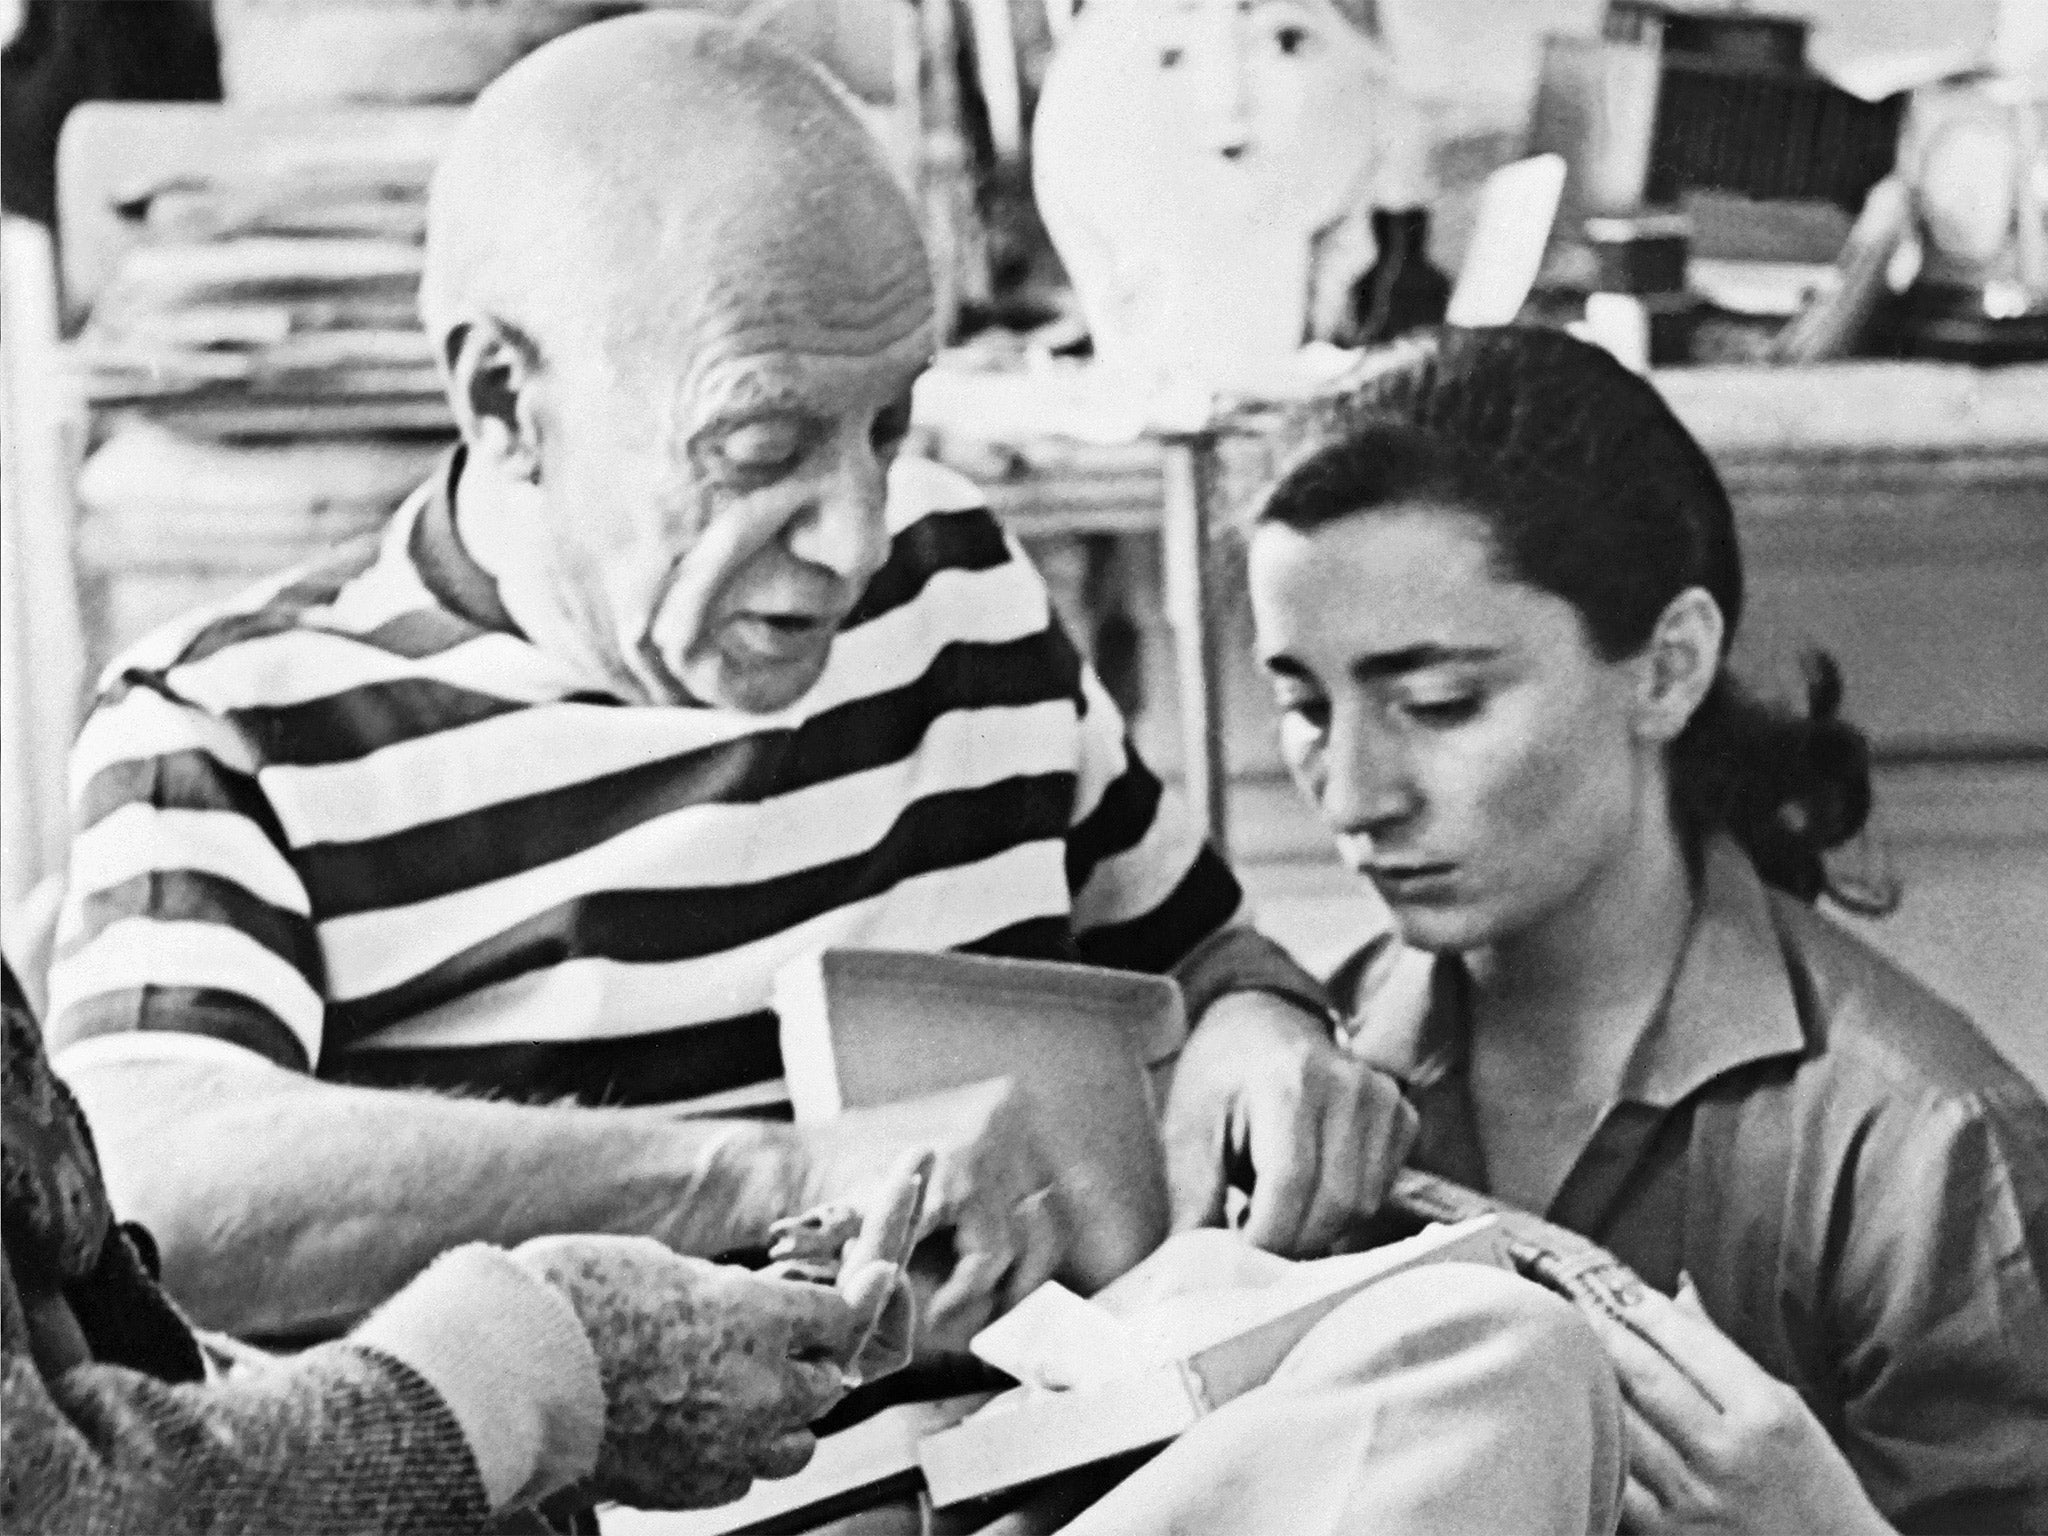 Princess Margaret Foto >> When Charlie Chaplin met Pablo Picasso: How a war of egos took place in Paris | The Independent